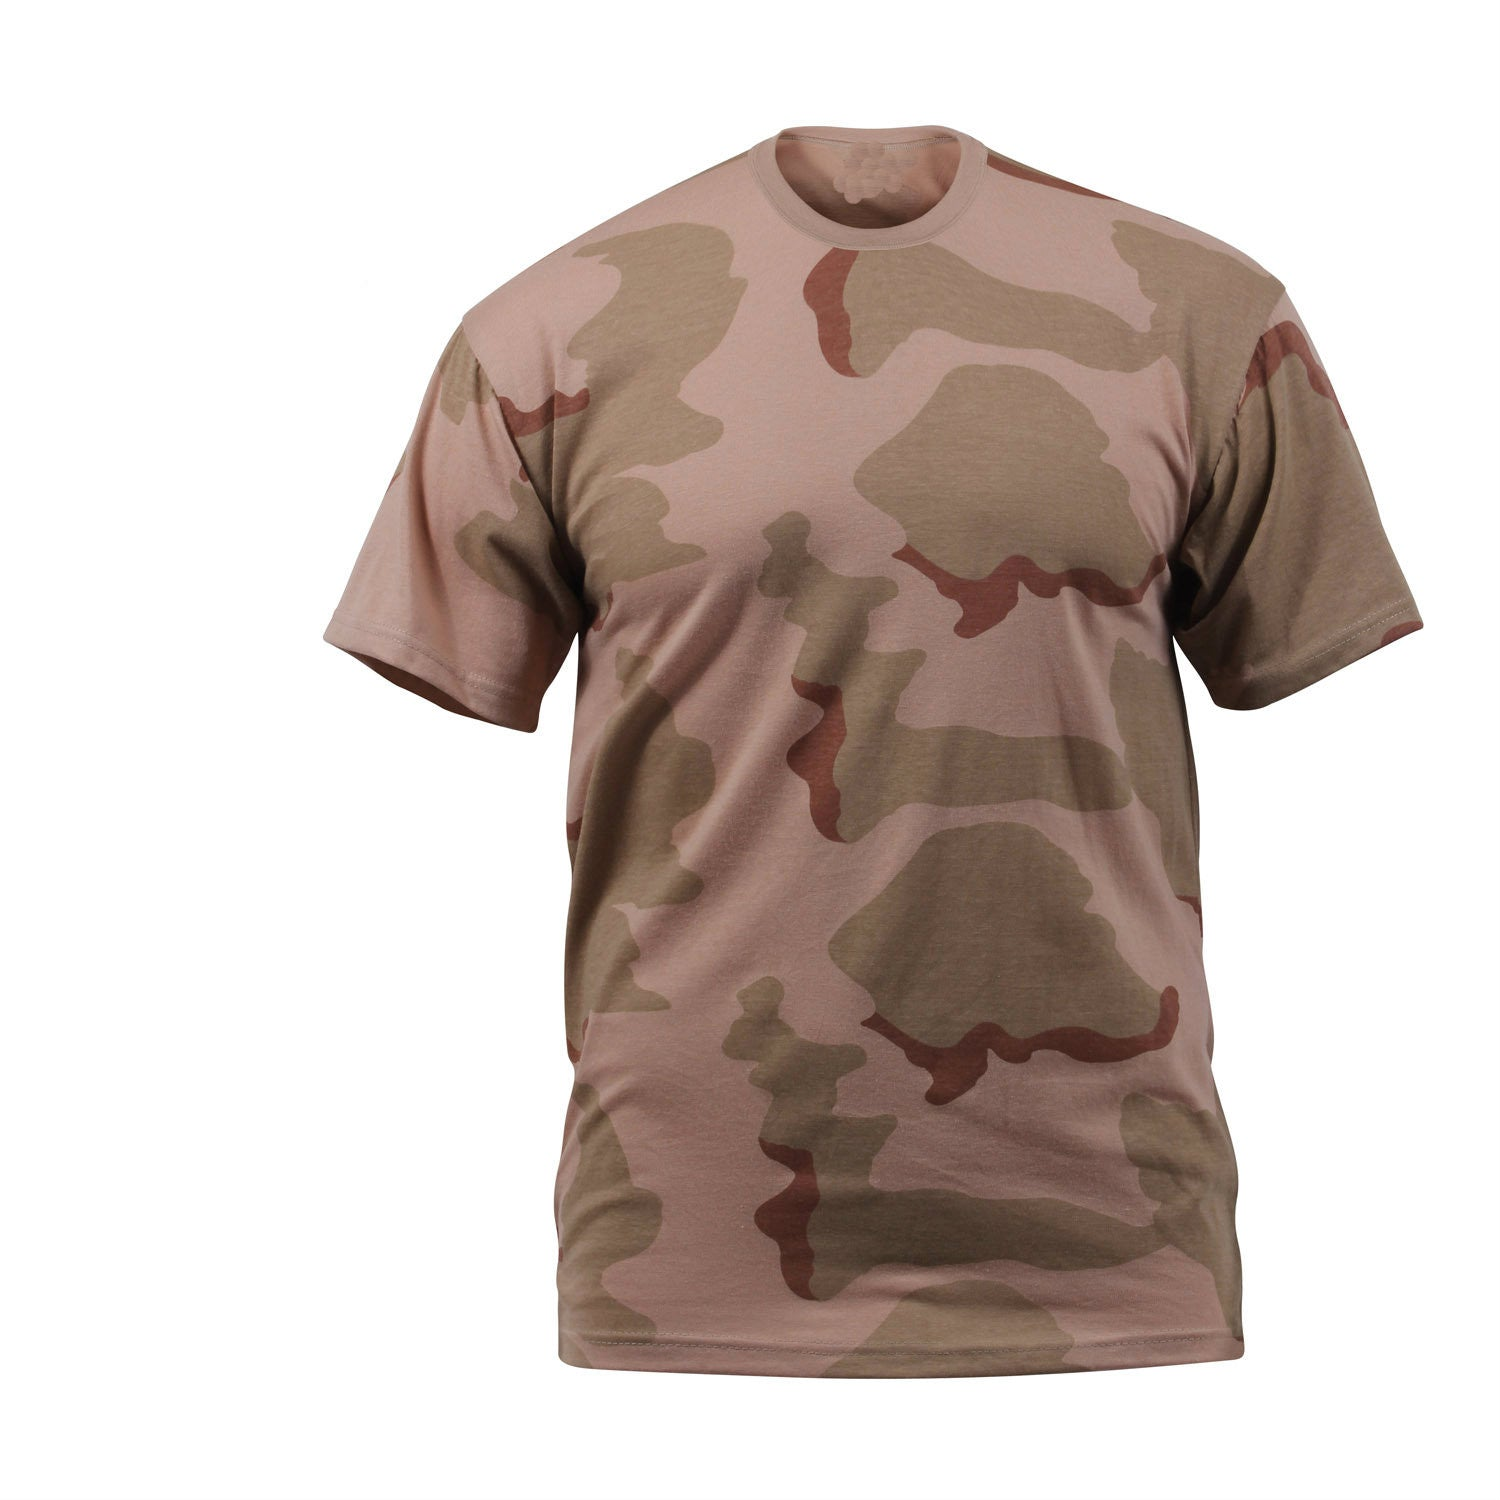 Tri Color Desert Camouflage T-Shirt